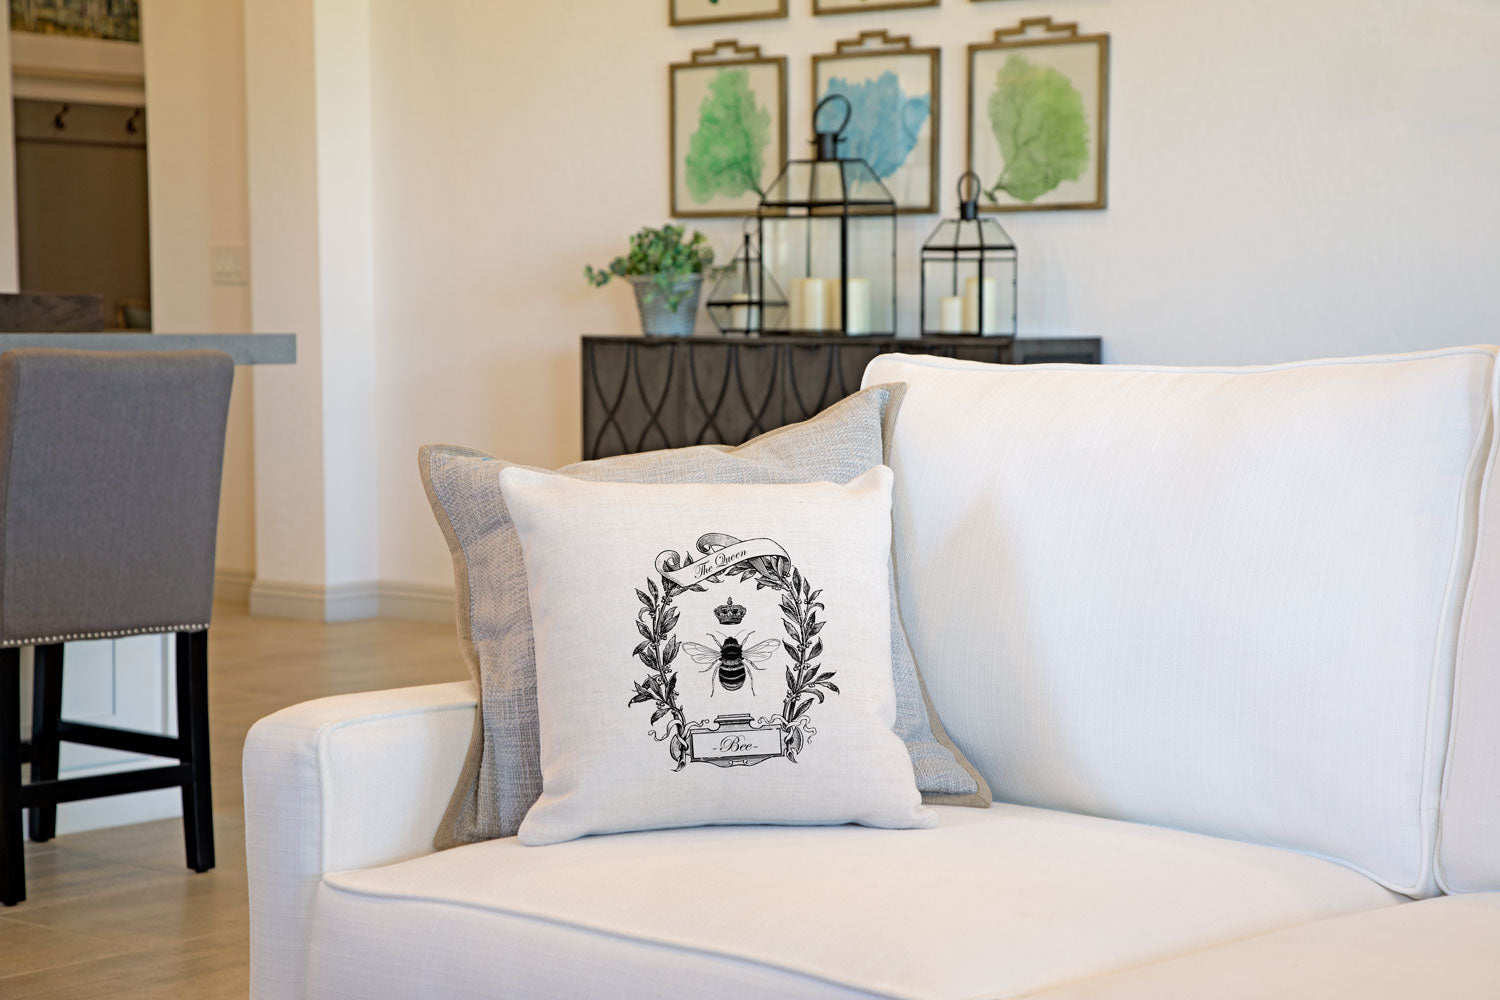 The Queen Bee Throw Pillow Cover - Decorative Designs Throw Pillow Cover Collection-Di Lewis